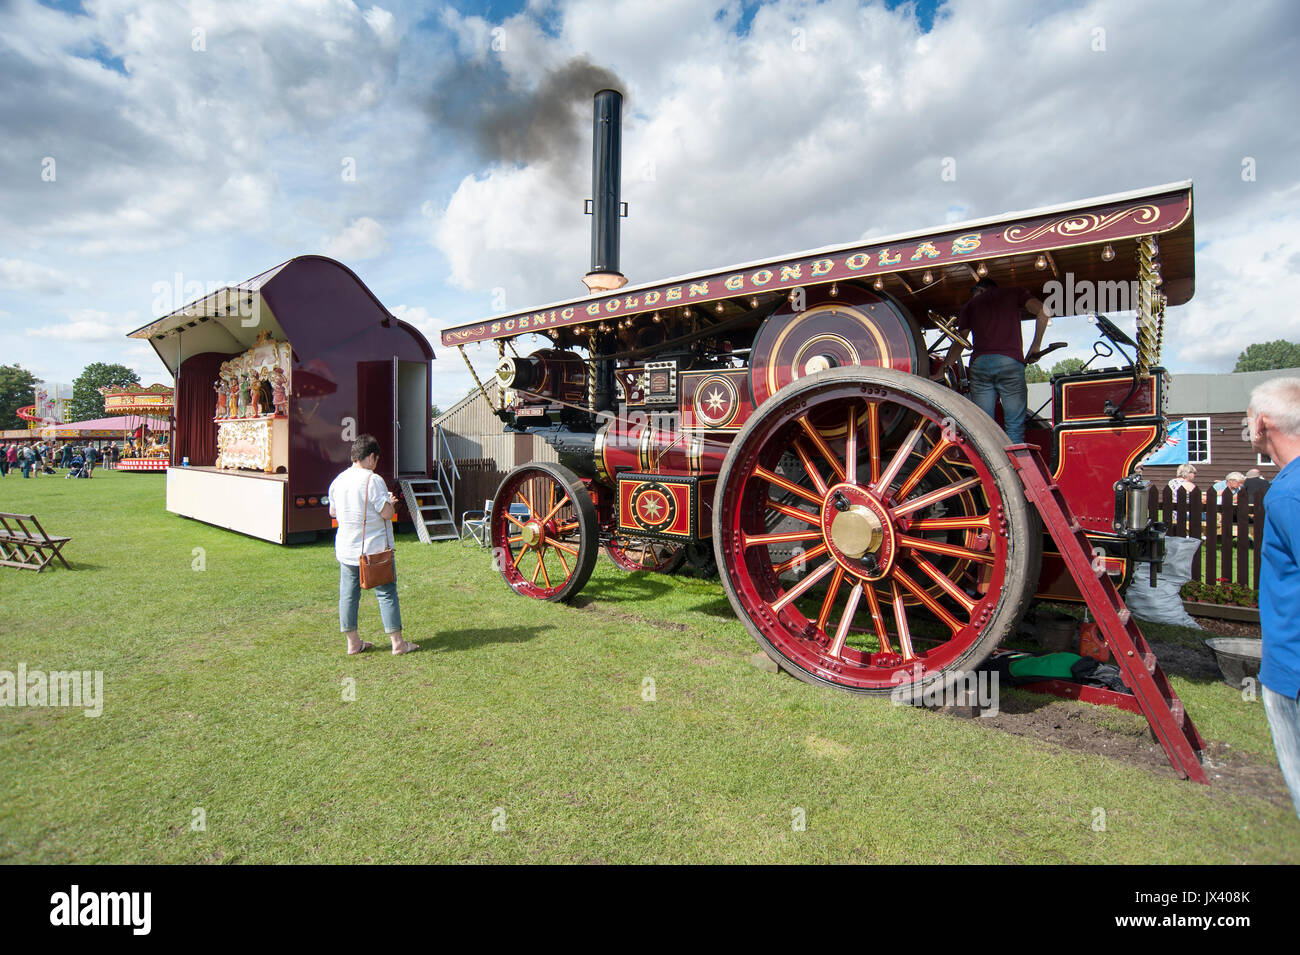 Fowler Showman's Steam Engine and Steam Organ playing for visitors at Driffield Steam and Vintage Rally in the East Riding of Yorkshire, England, UK - Stock Image